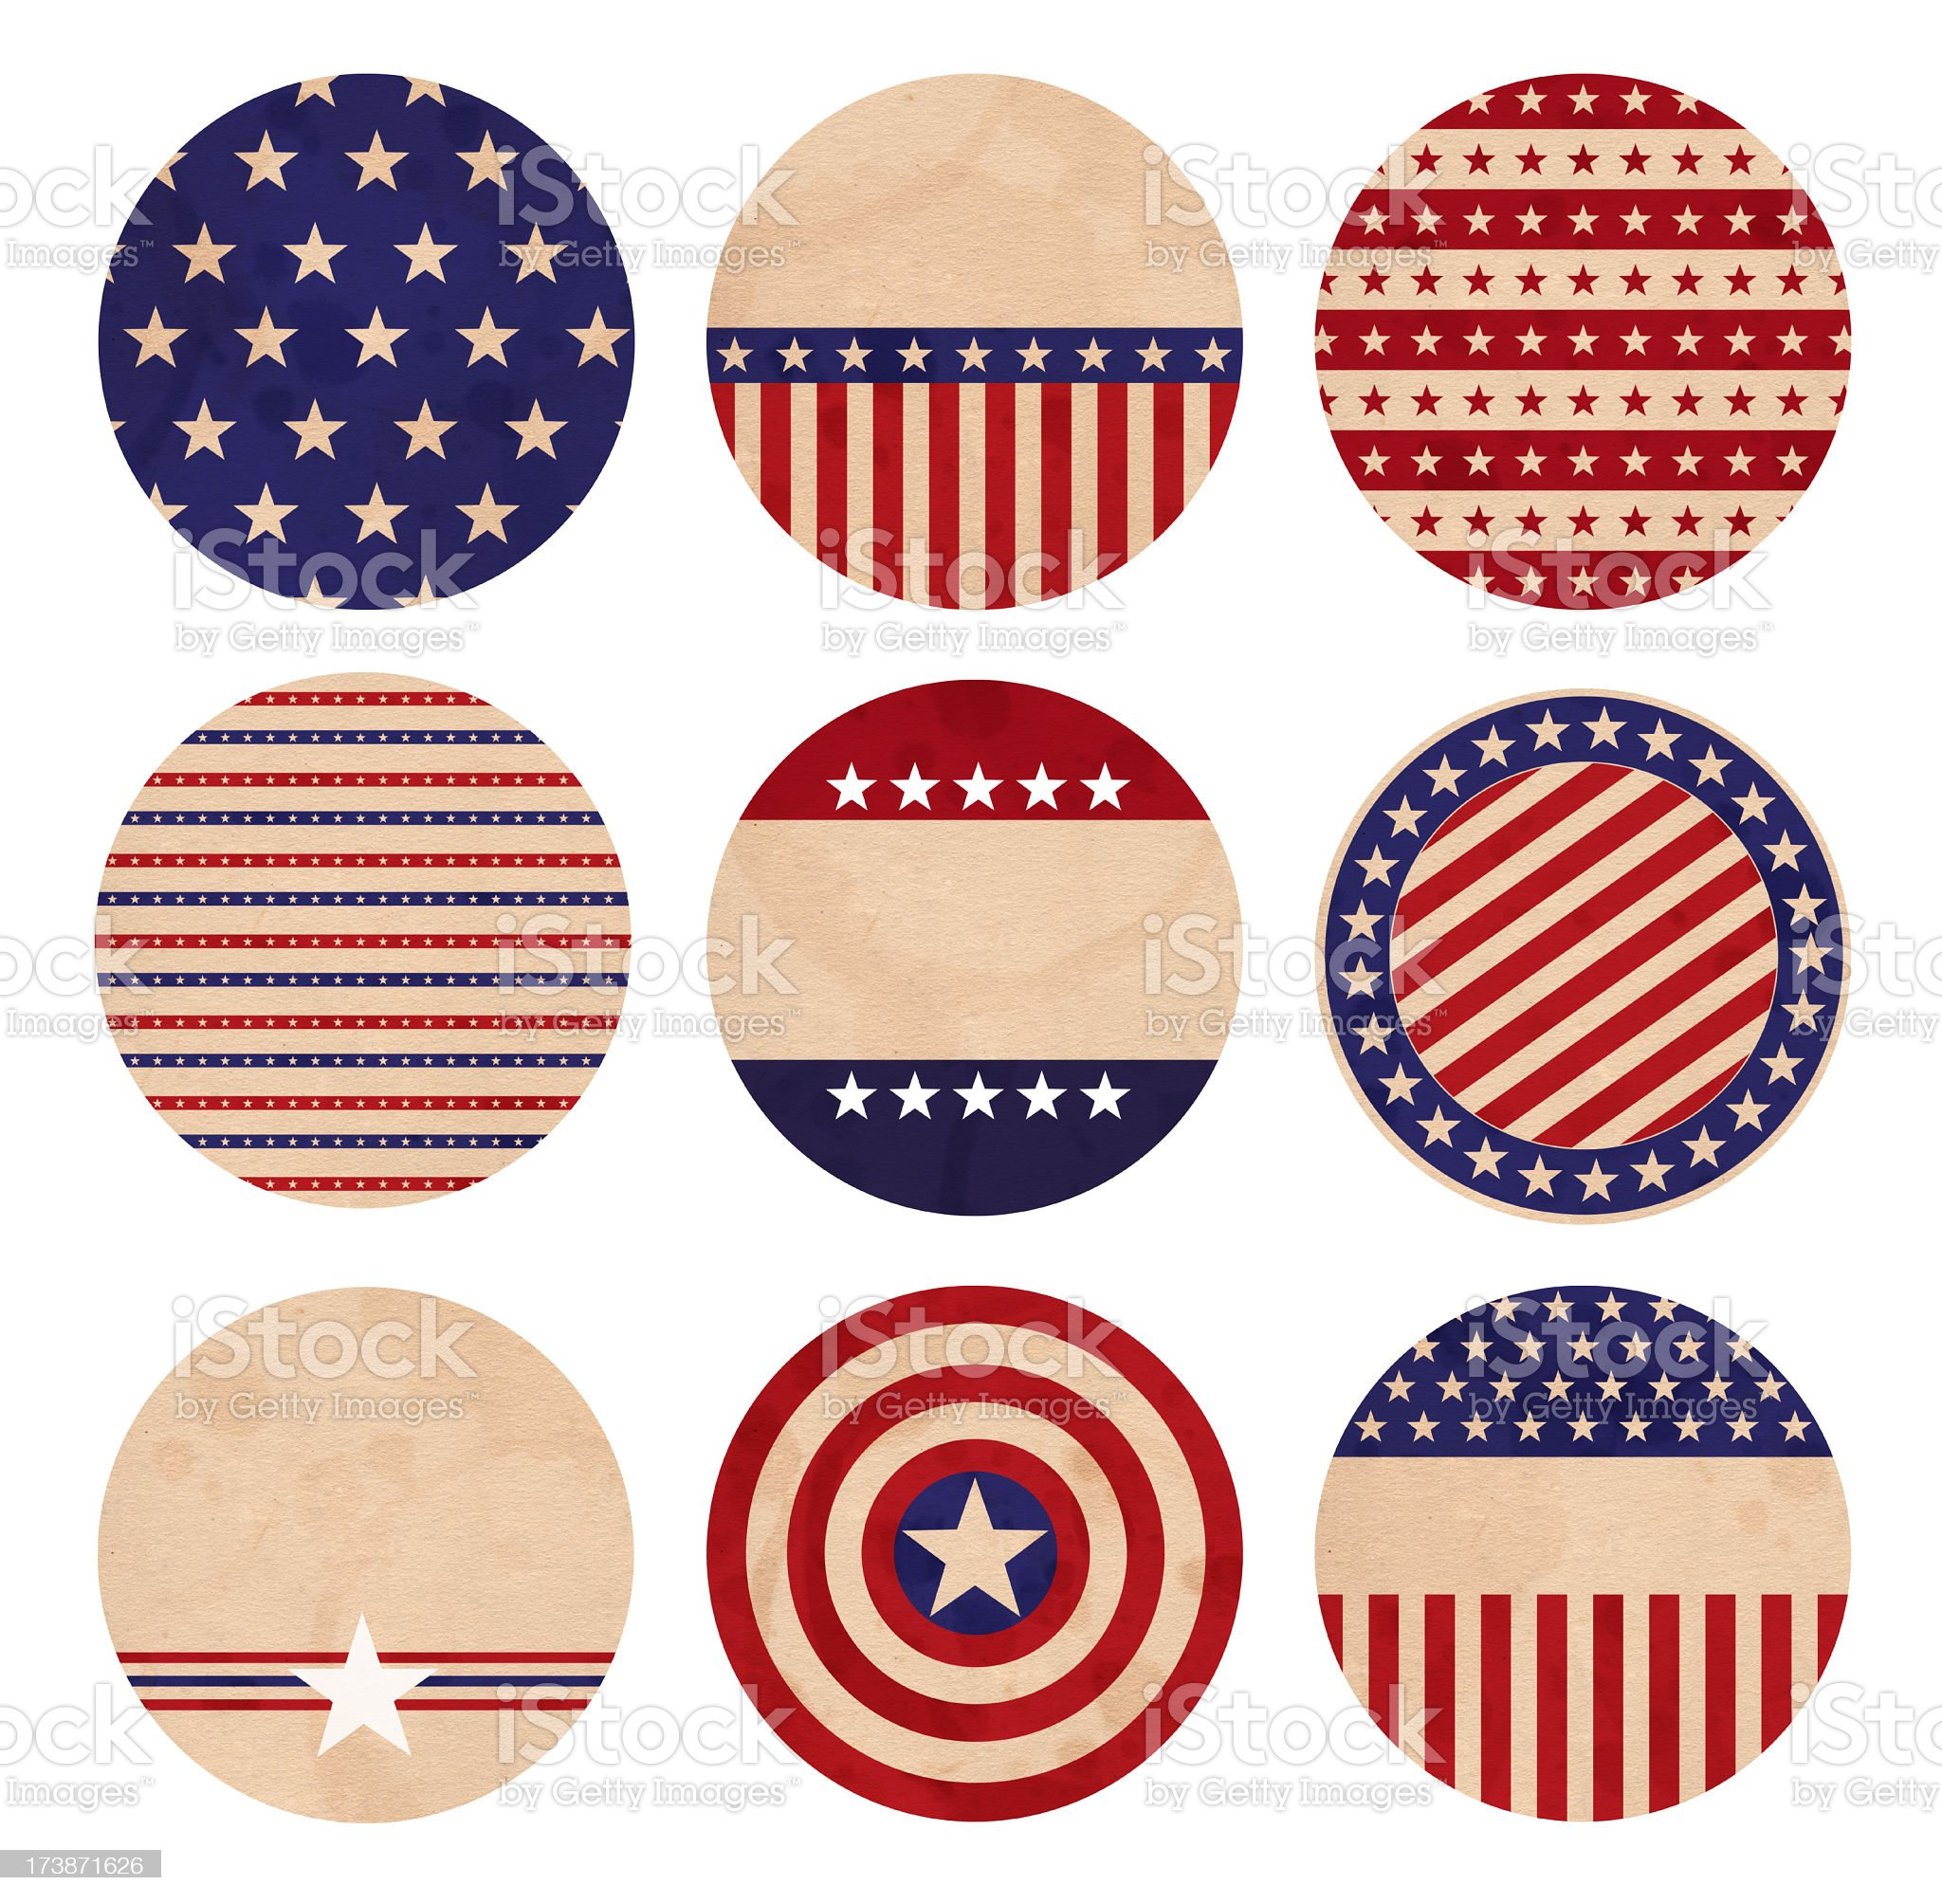 Patriotic Coasters / Buttons royalty-free stock photo